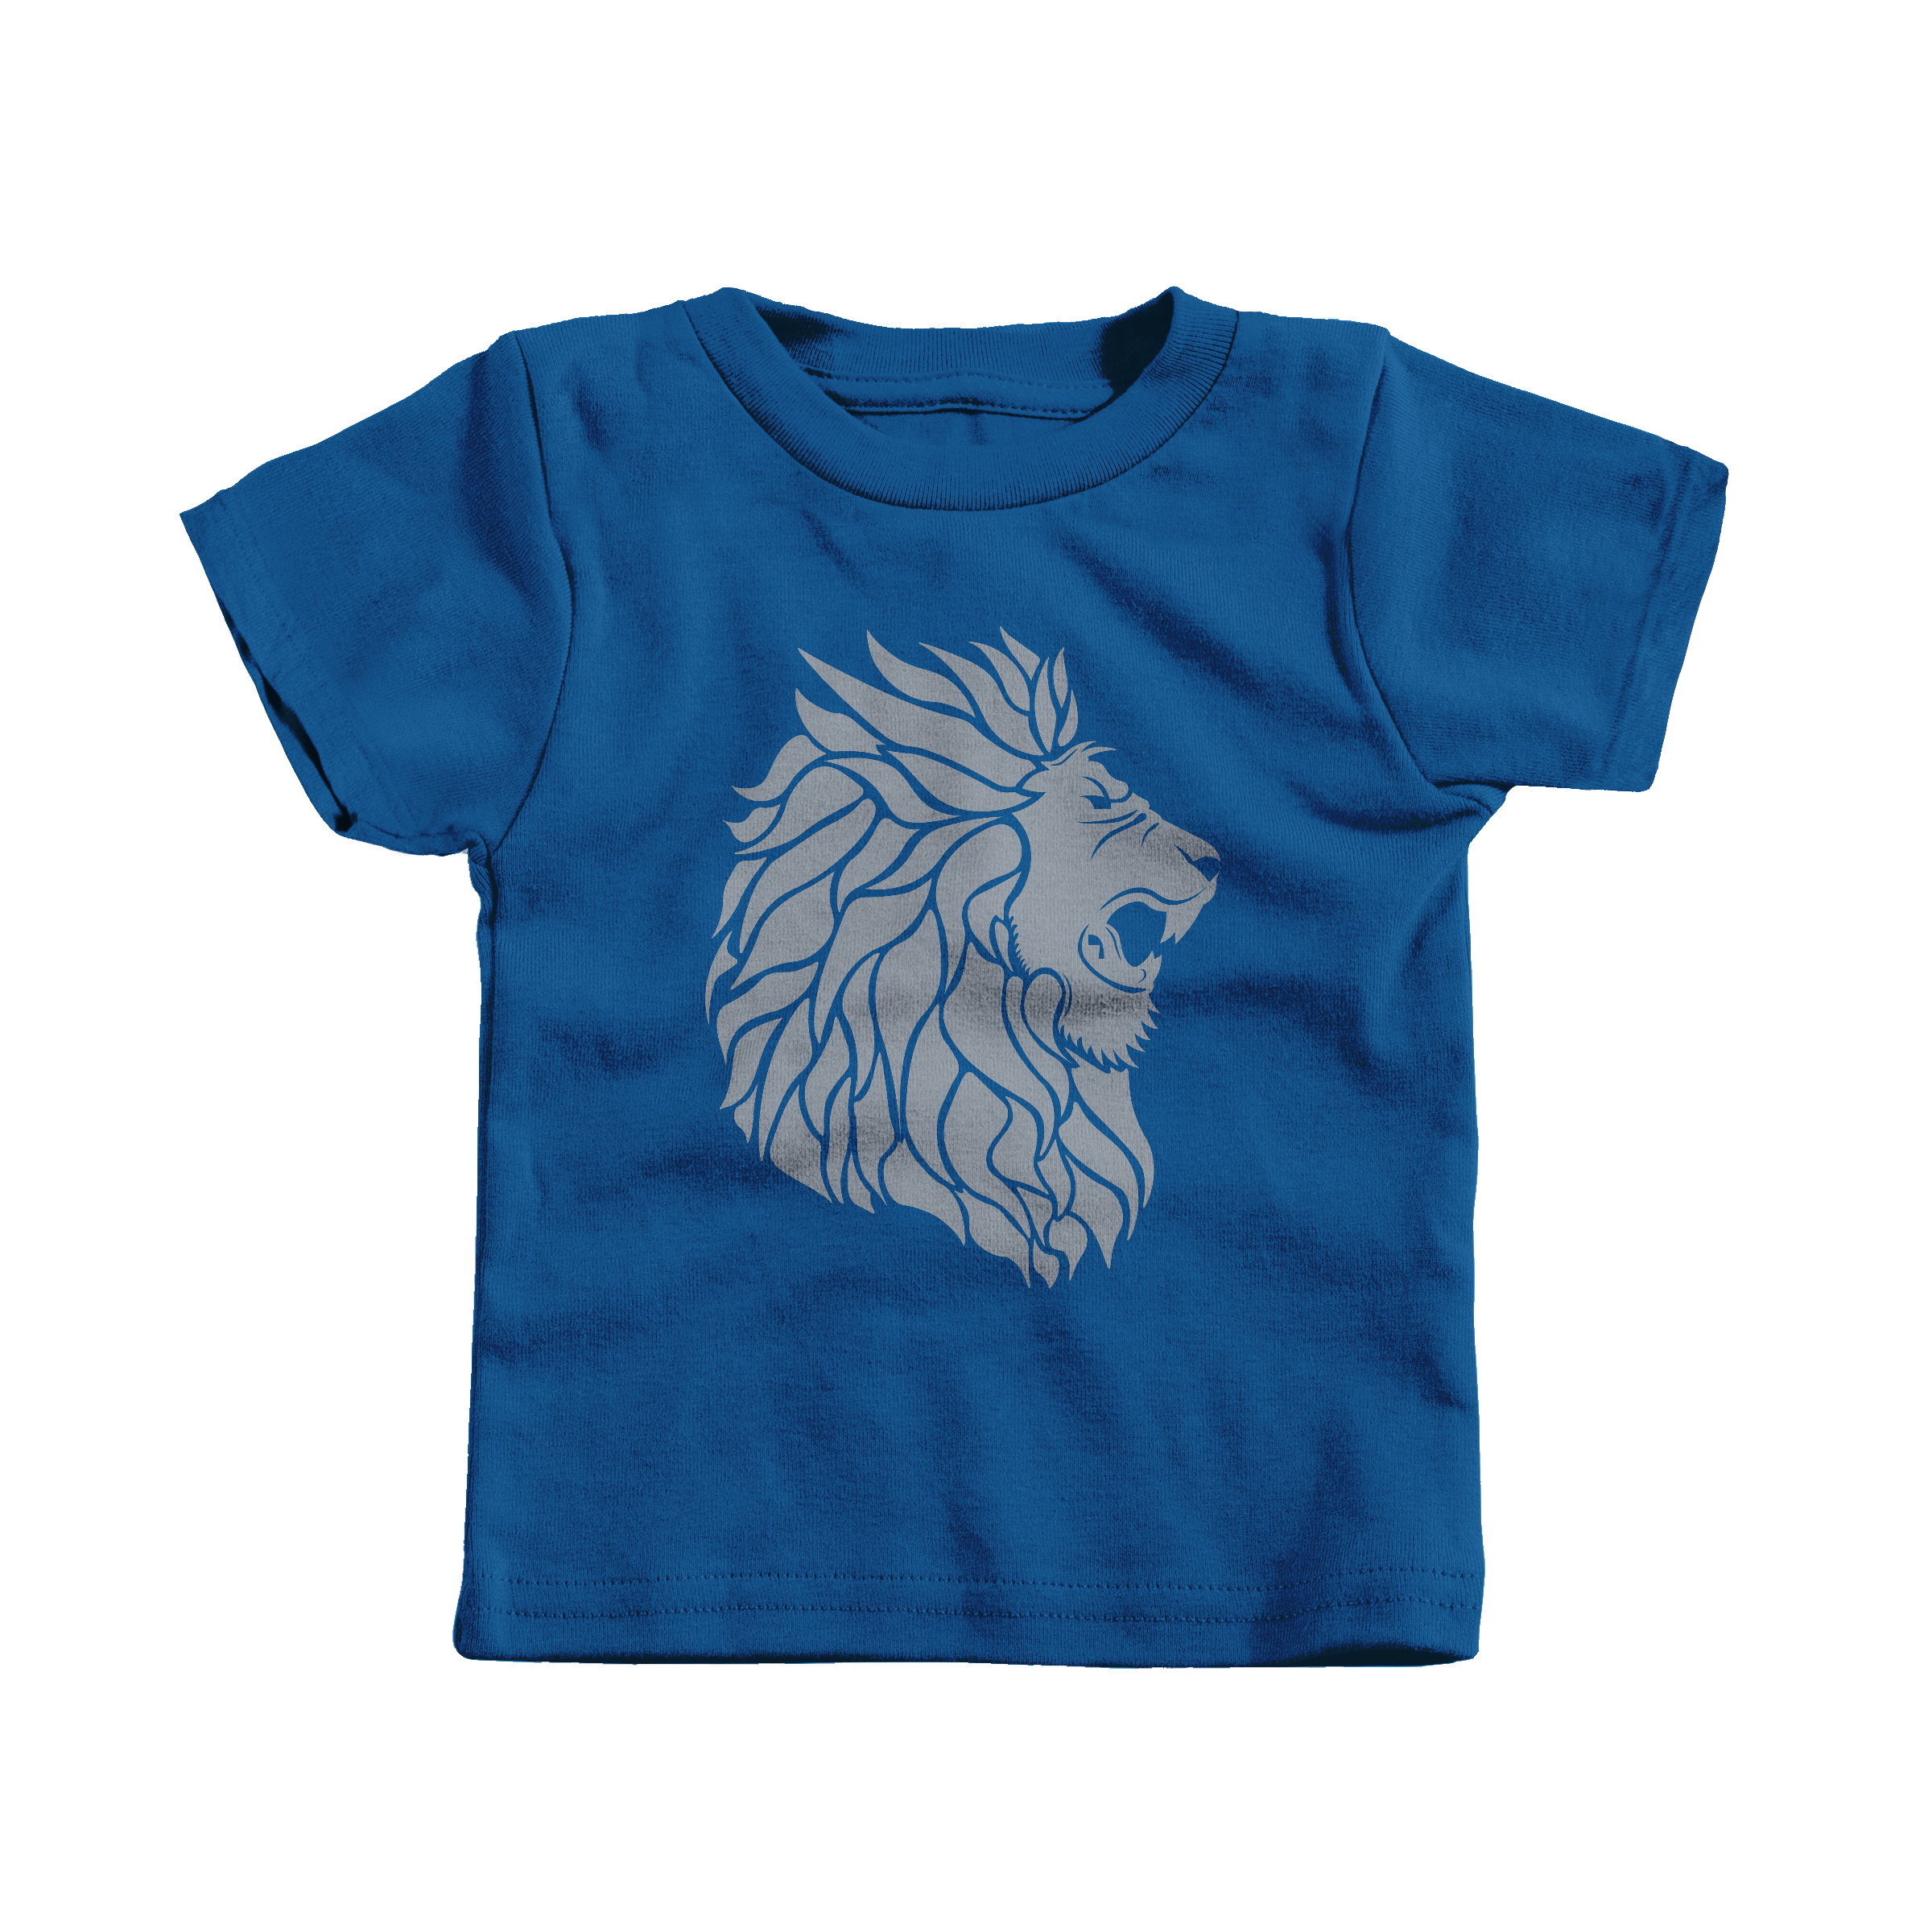 Daniel and The Lion Royal (T-Shirt)